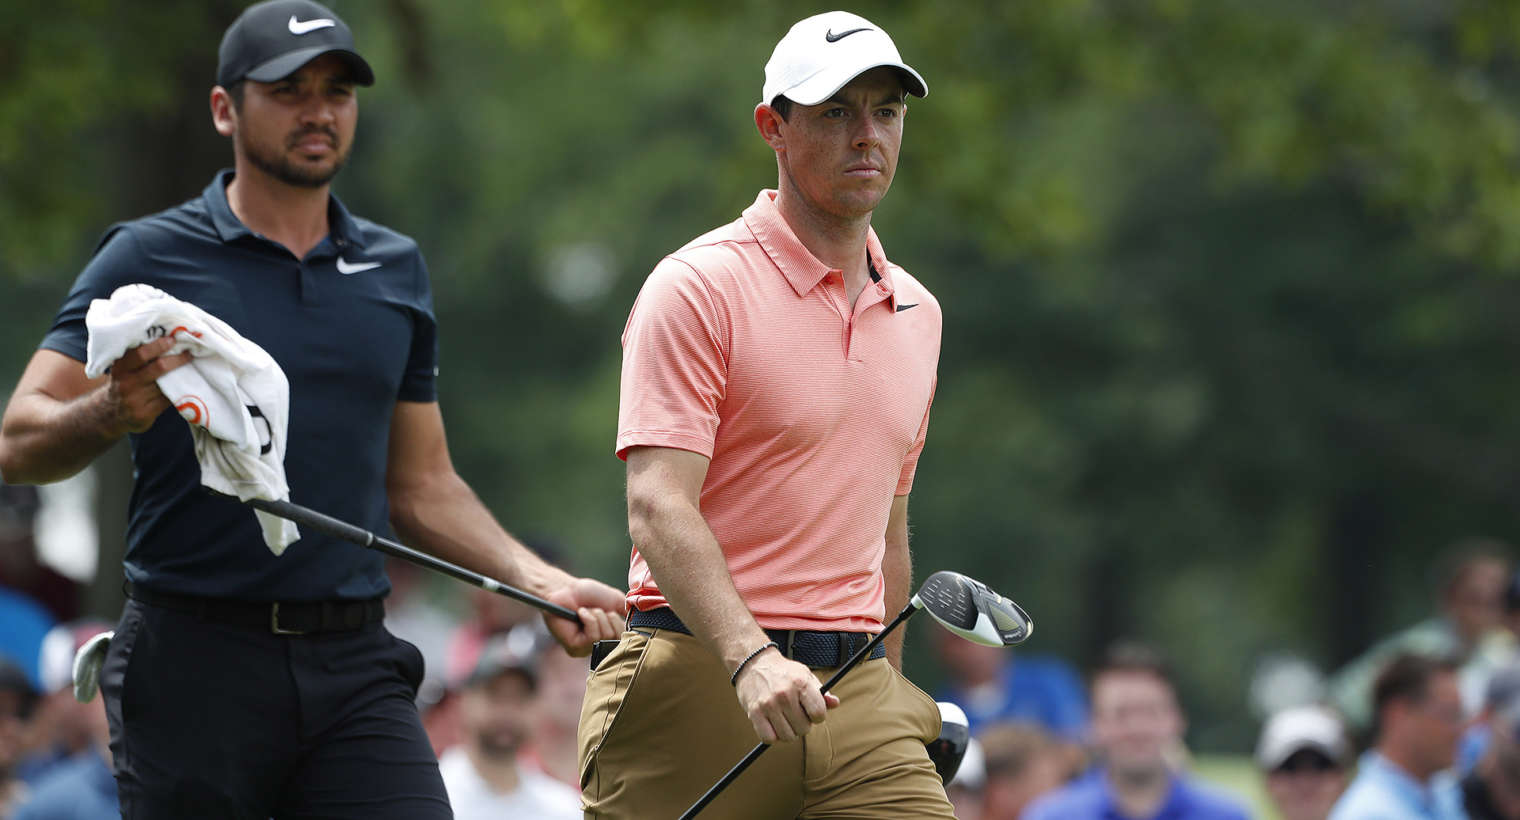 Hot Seat: DJ's distance puts heat on governing bodies